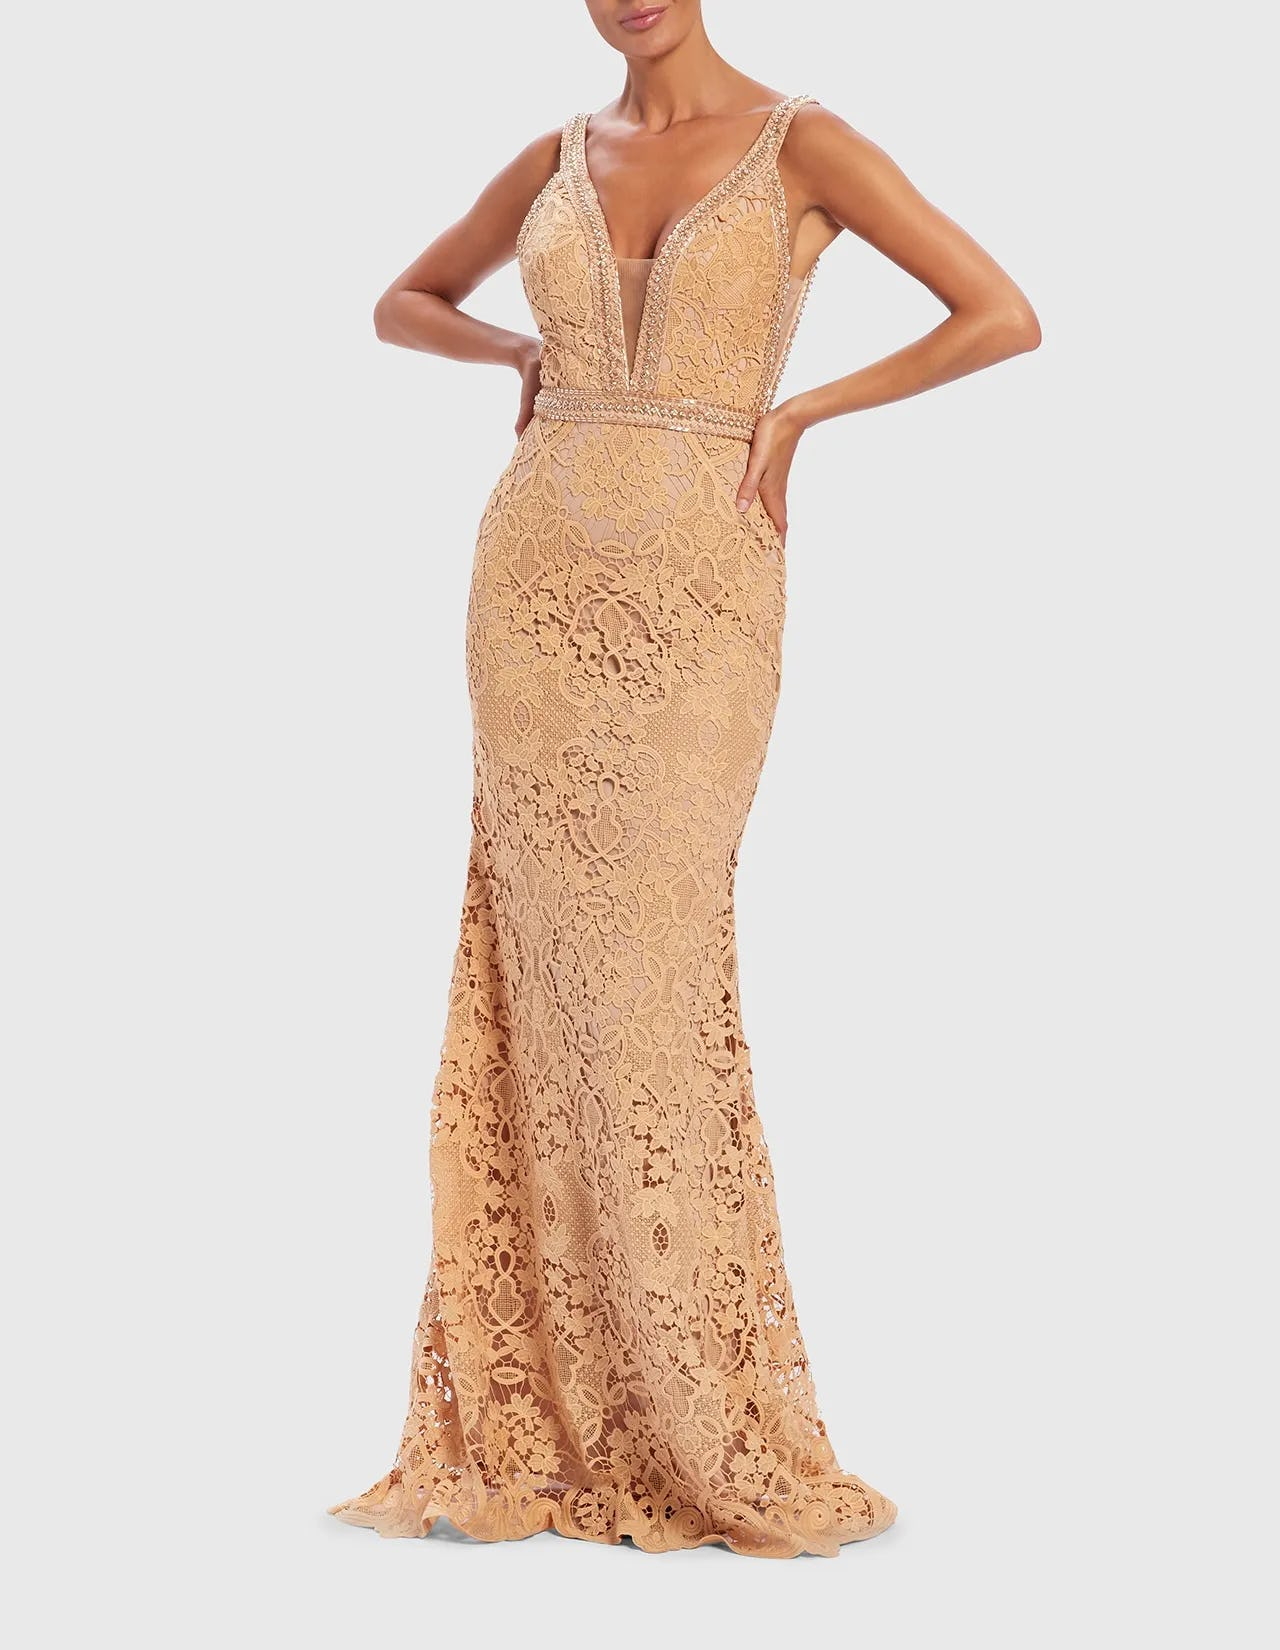 UNIQUE-Nude-Lace-Embroidered-Embellished-Evening-Gown-8